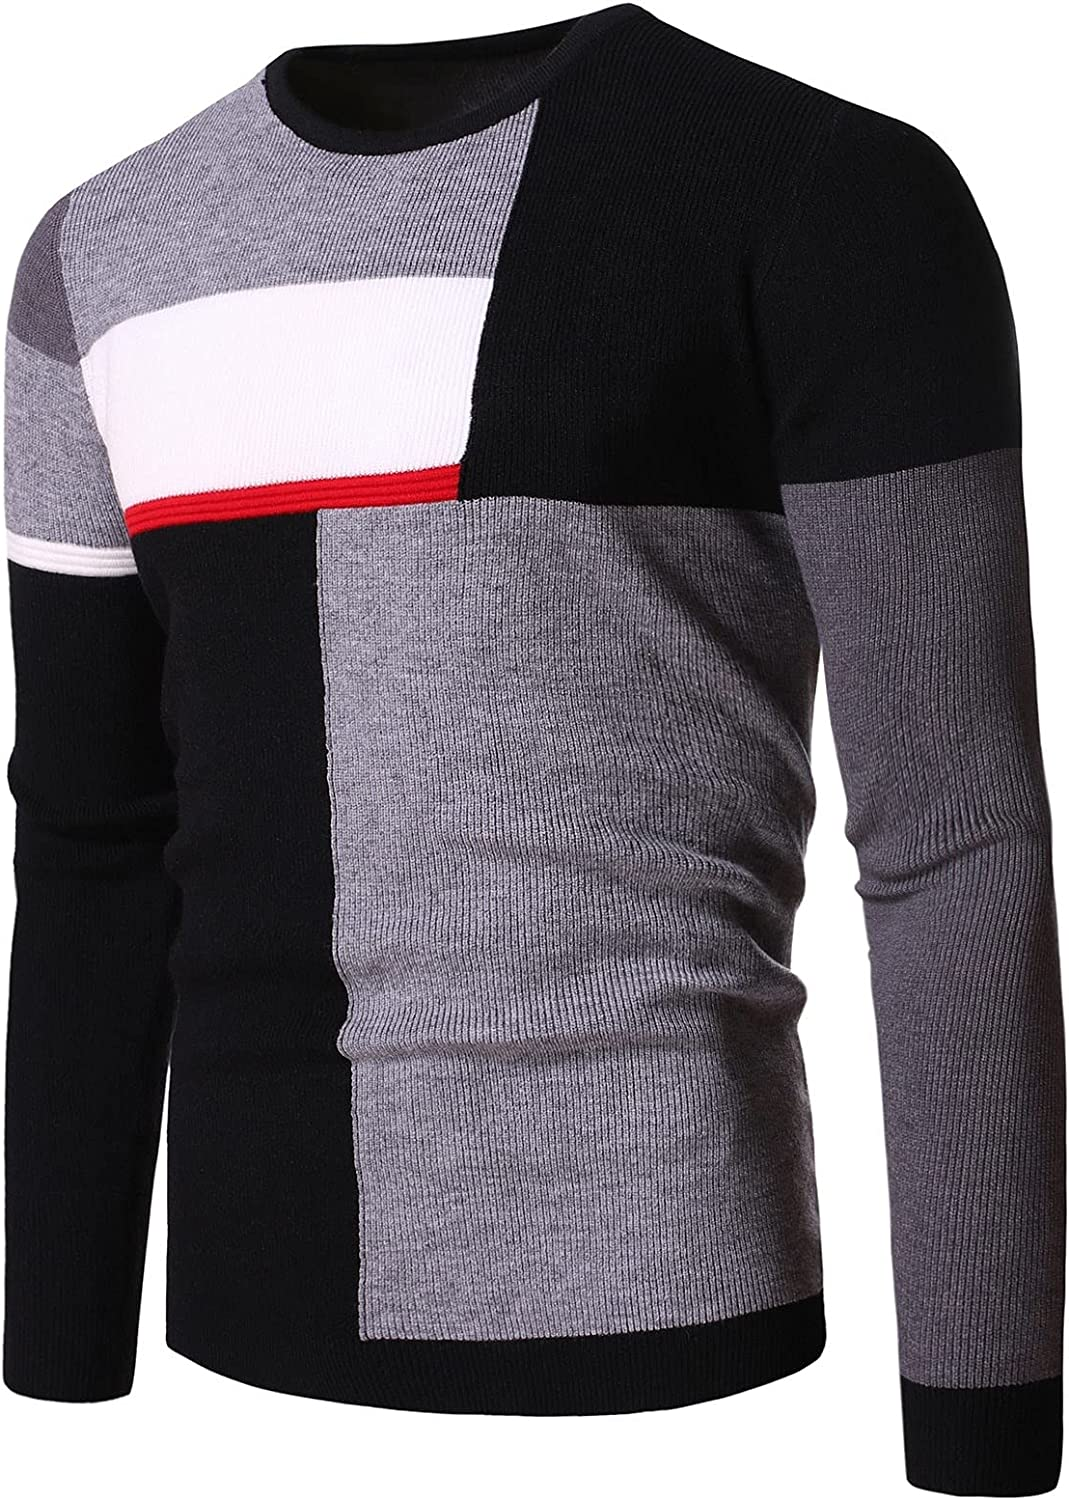 XXBR Sweater for Mens, Fall Winter Knit Intarsia Color Block Patchwork Crewneck Pullover Casual Teen Boys Jumper Tops